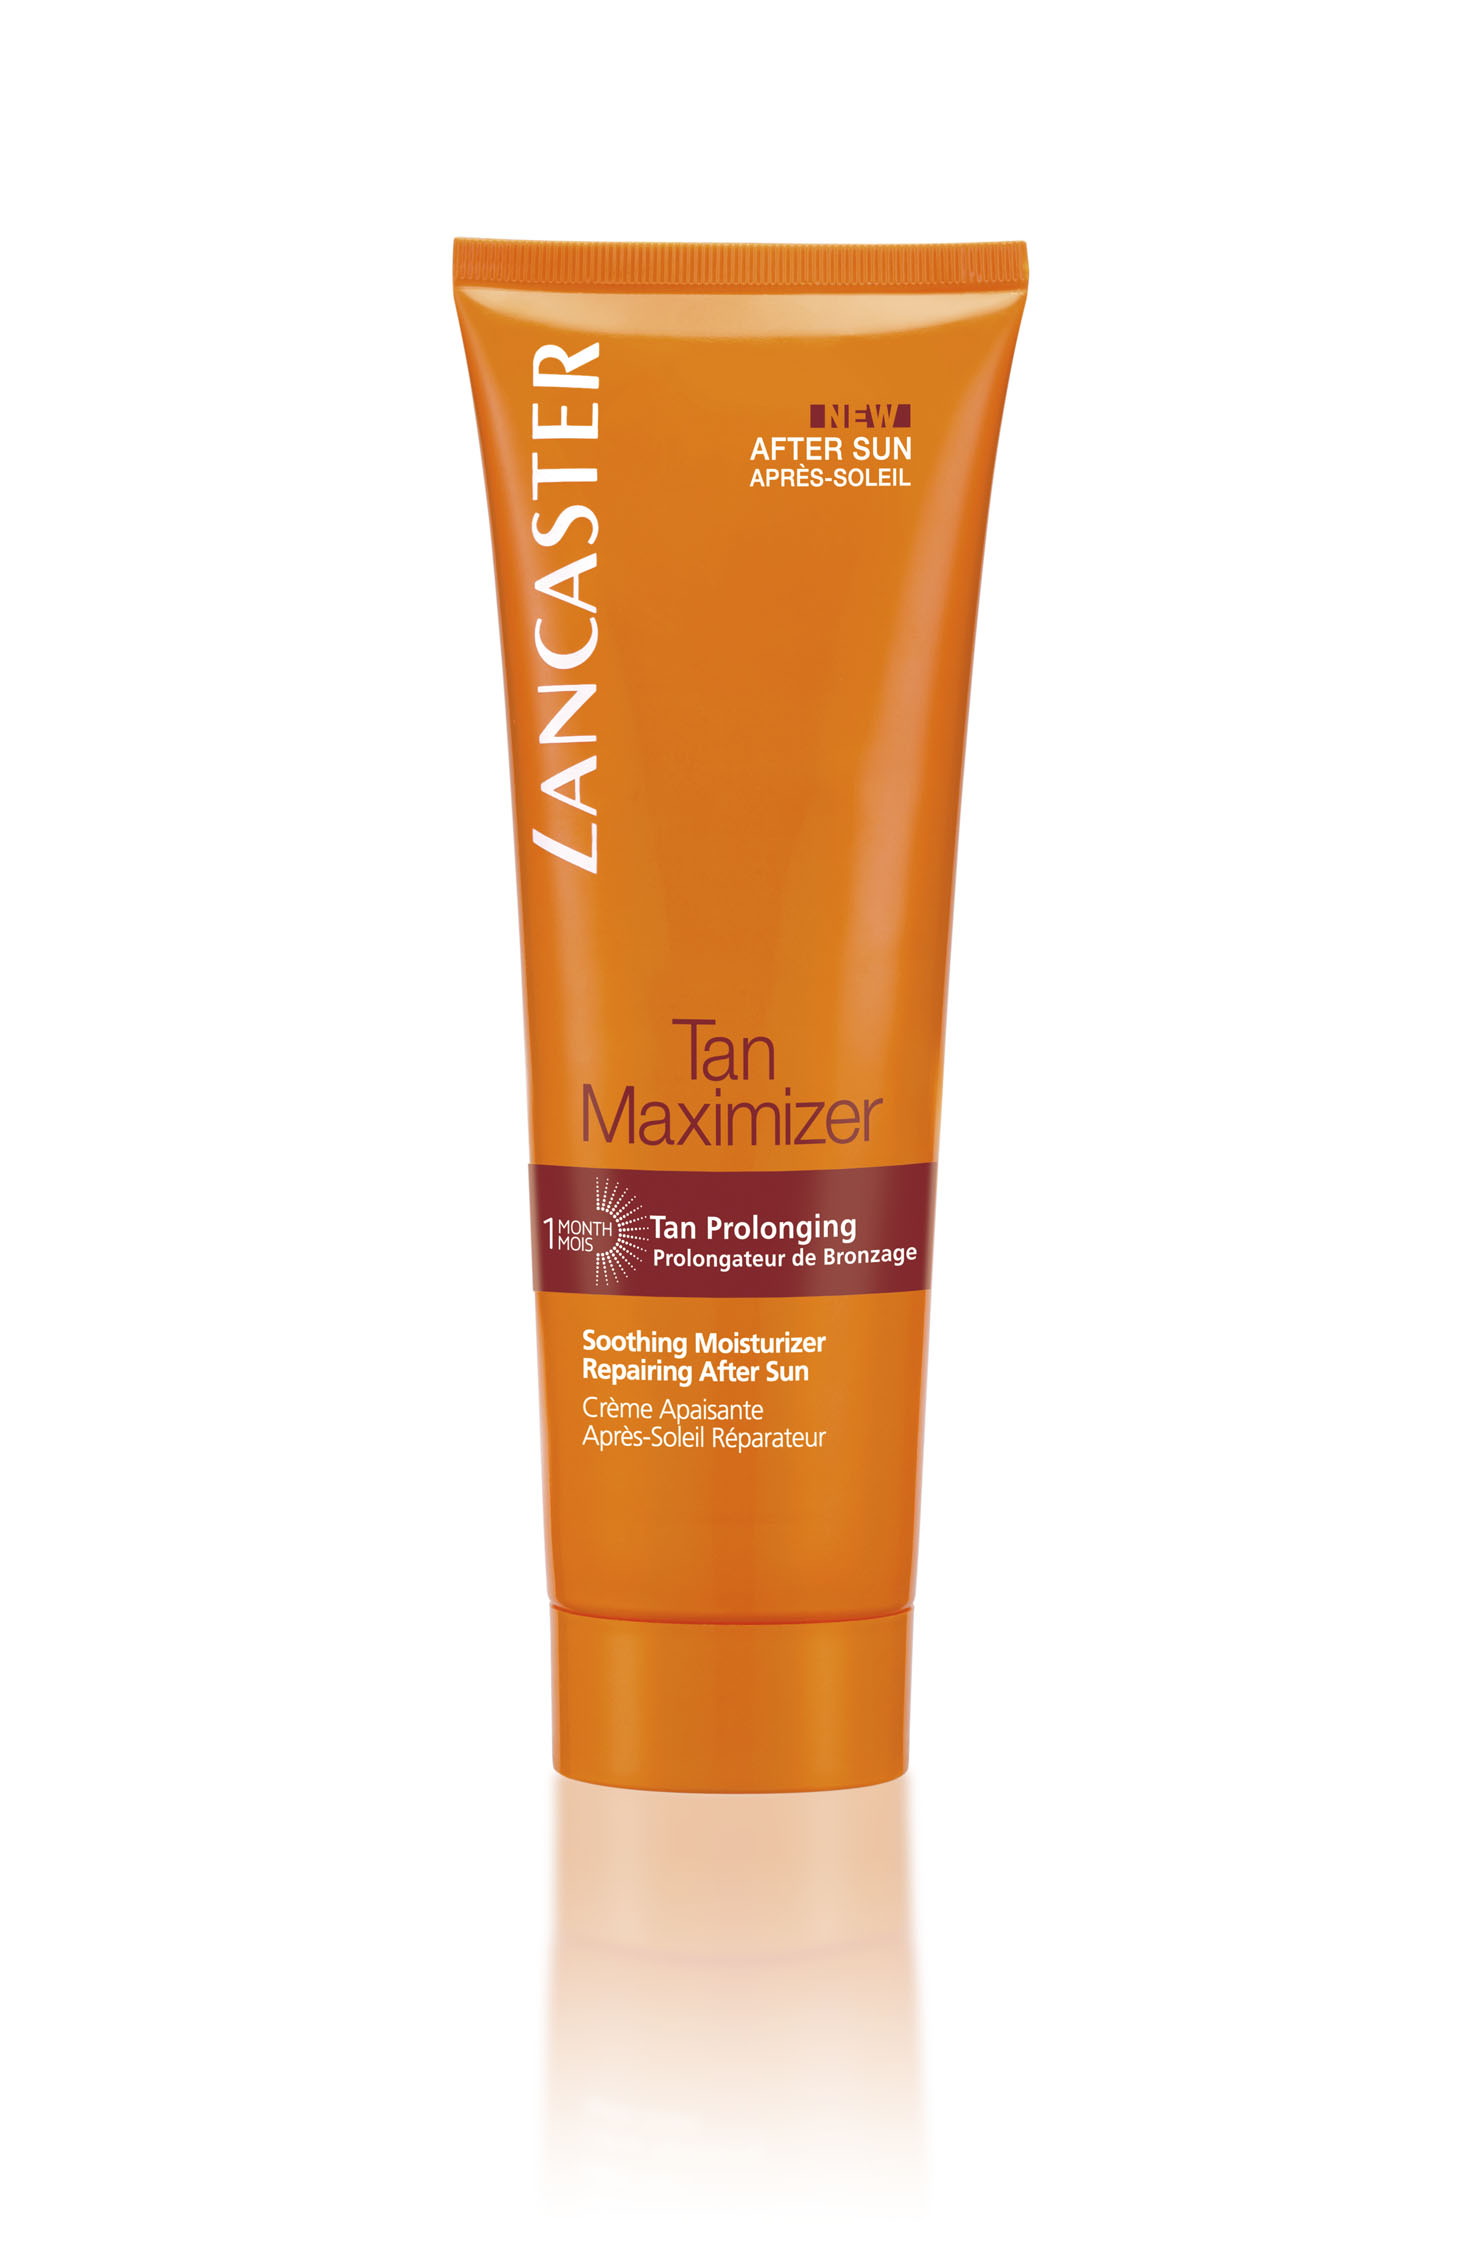 Tan Maximizer Soothing Moisturizer Repairing After Sun, Lancaster